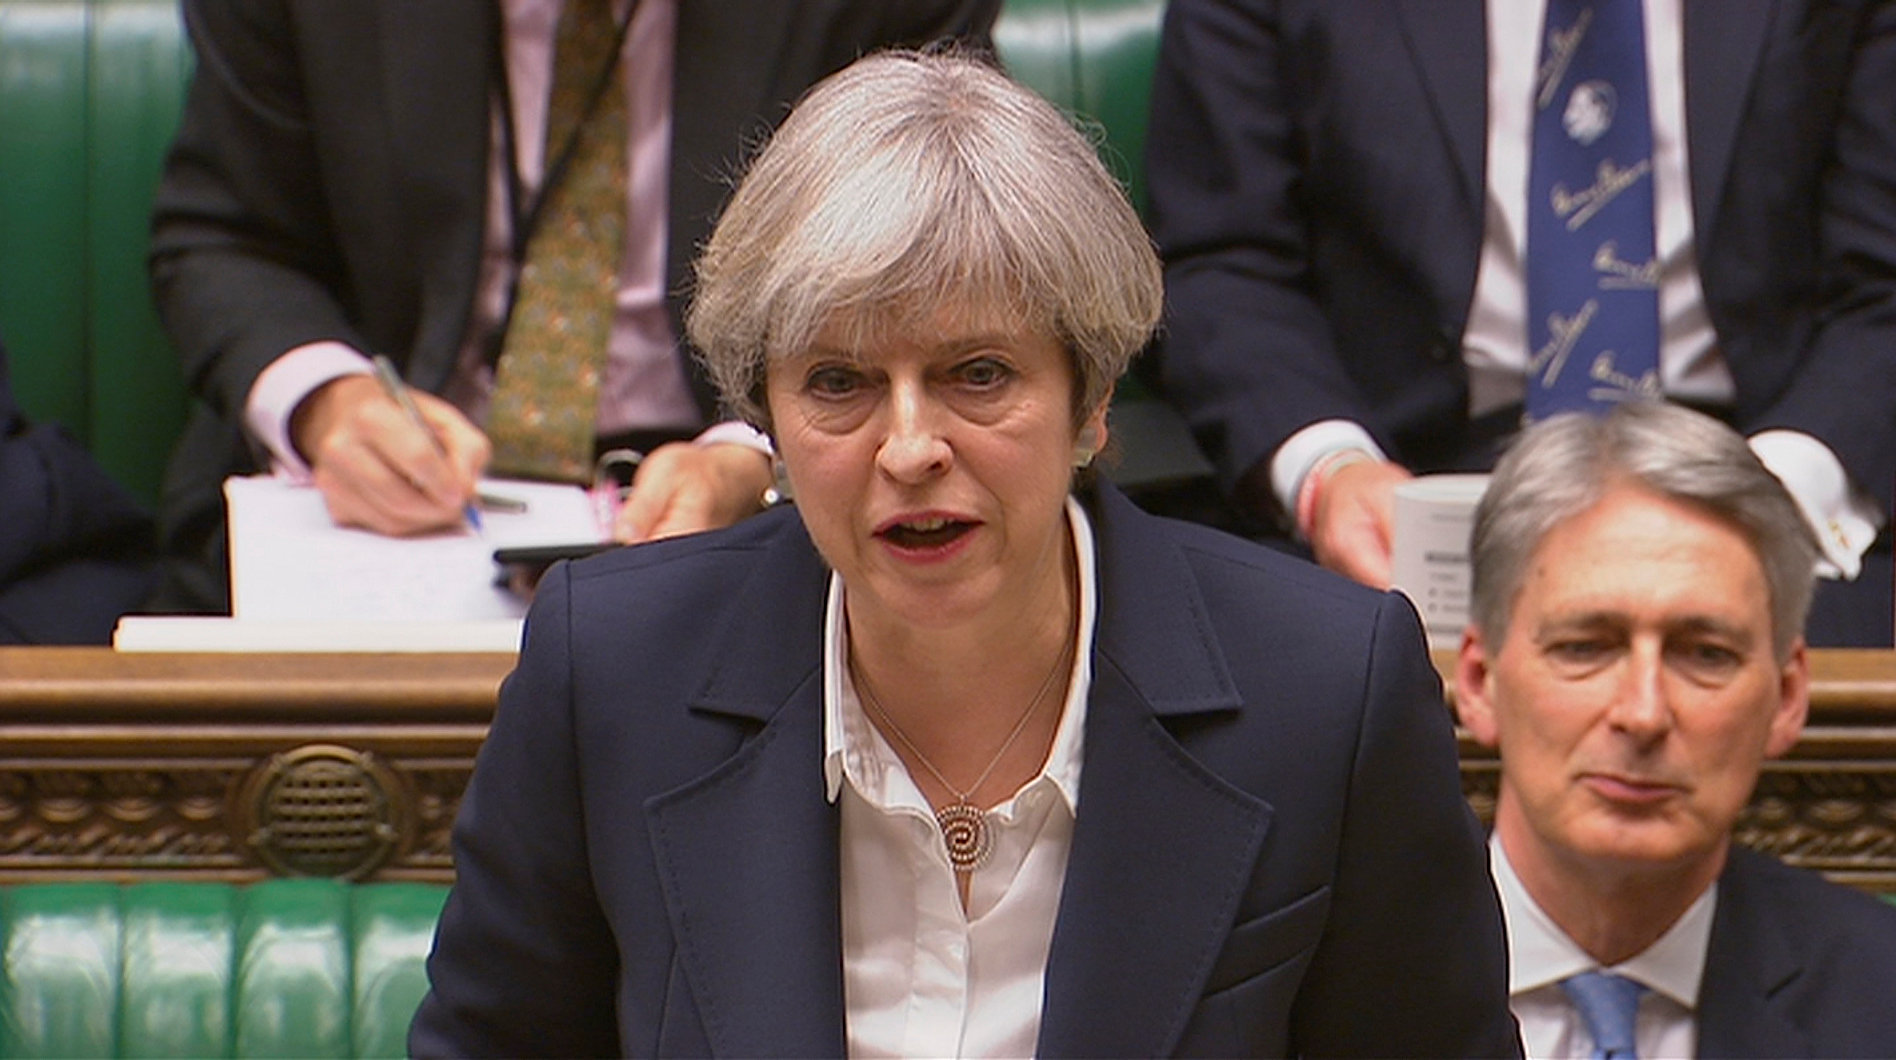 Britain's Prime Minister Theresa May speaks in Parliament as she announces that she has sent the letter to trigger the process of leaving the European Union in London on March 29, 2017. (Parliament TV handout via REUTERS)